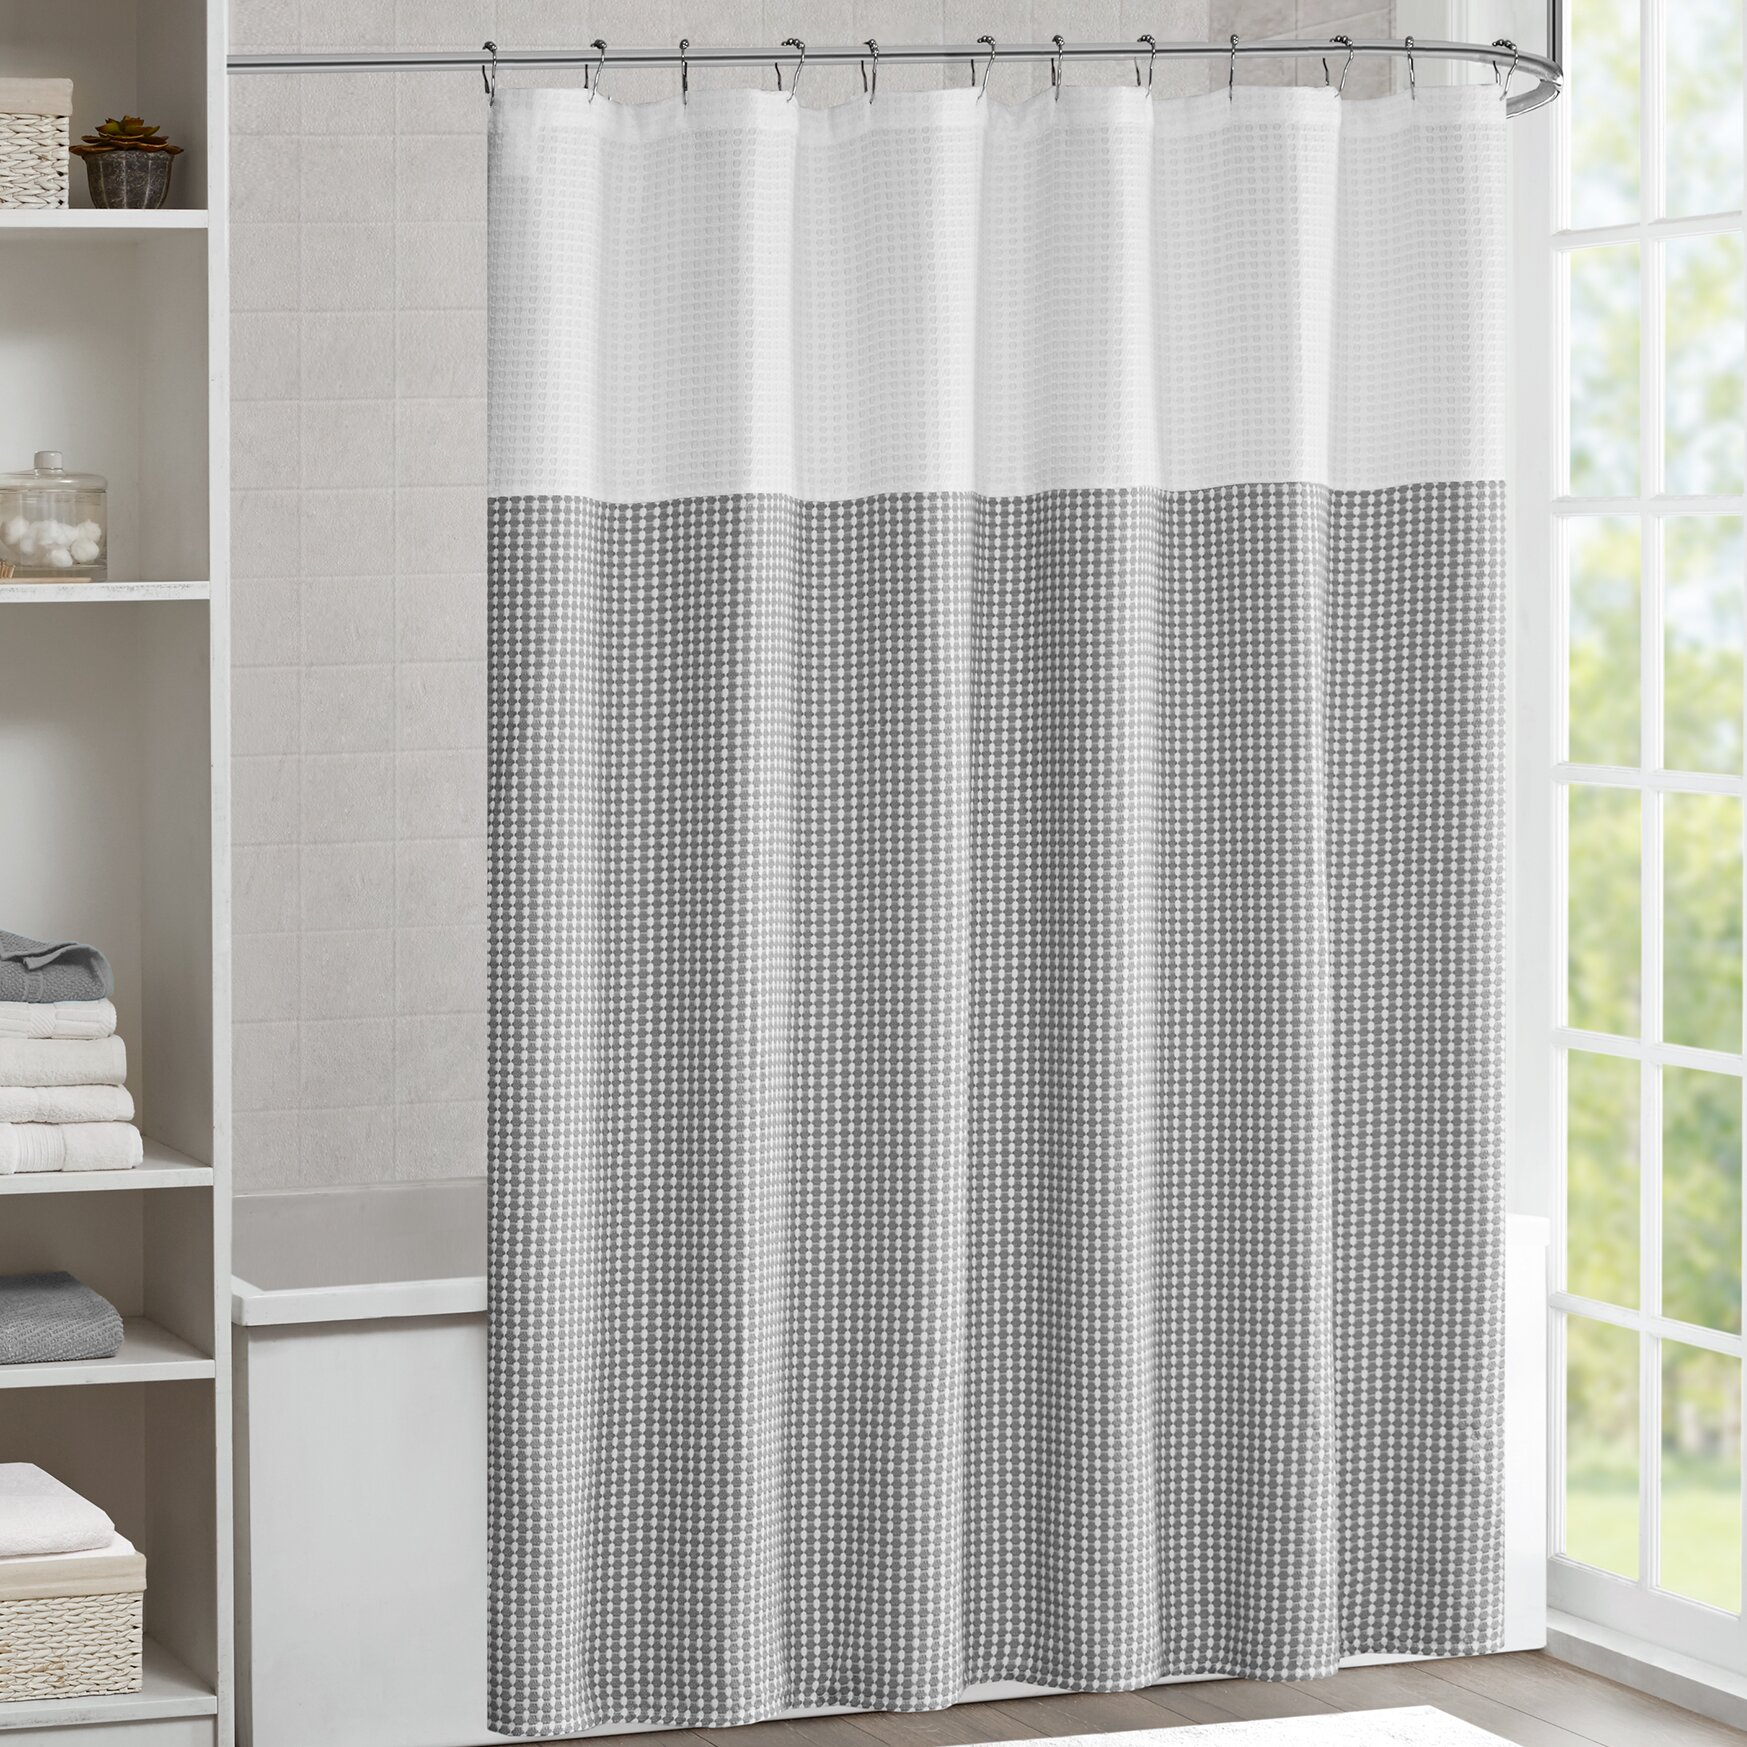 laurel foundry modern farmhouse moreland shower curtain. Black Bedroom Furniture Sets. Home Design Ideas